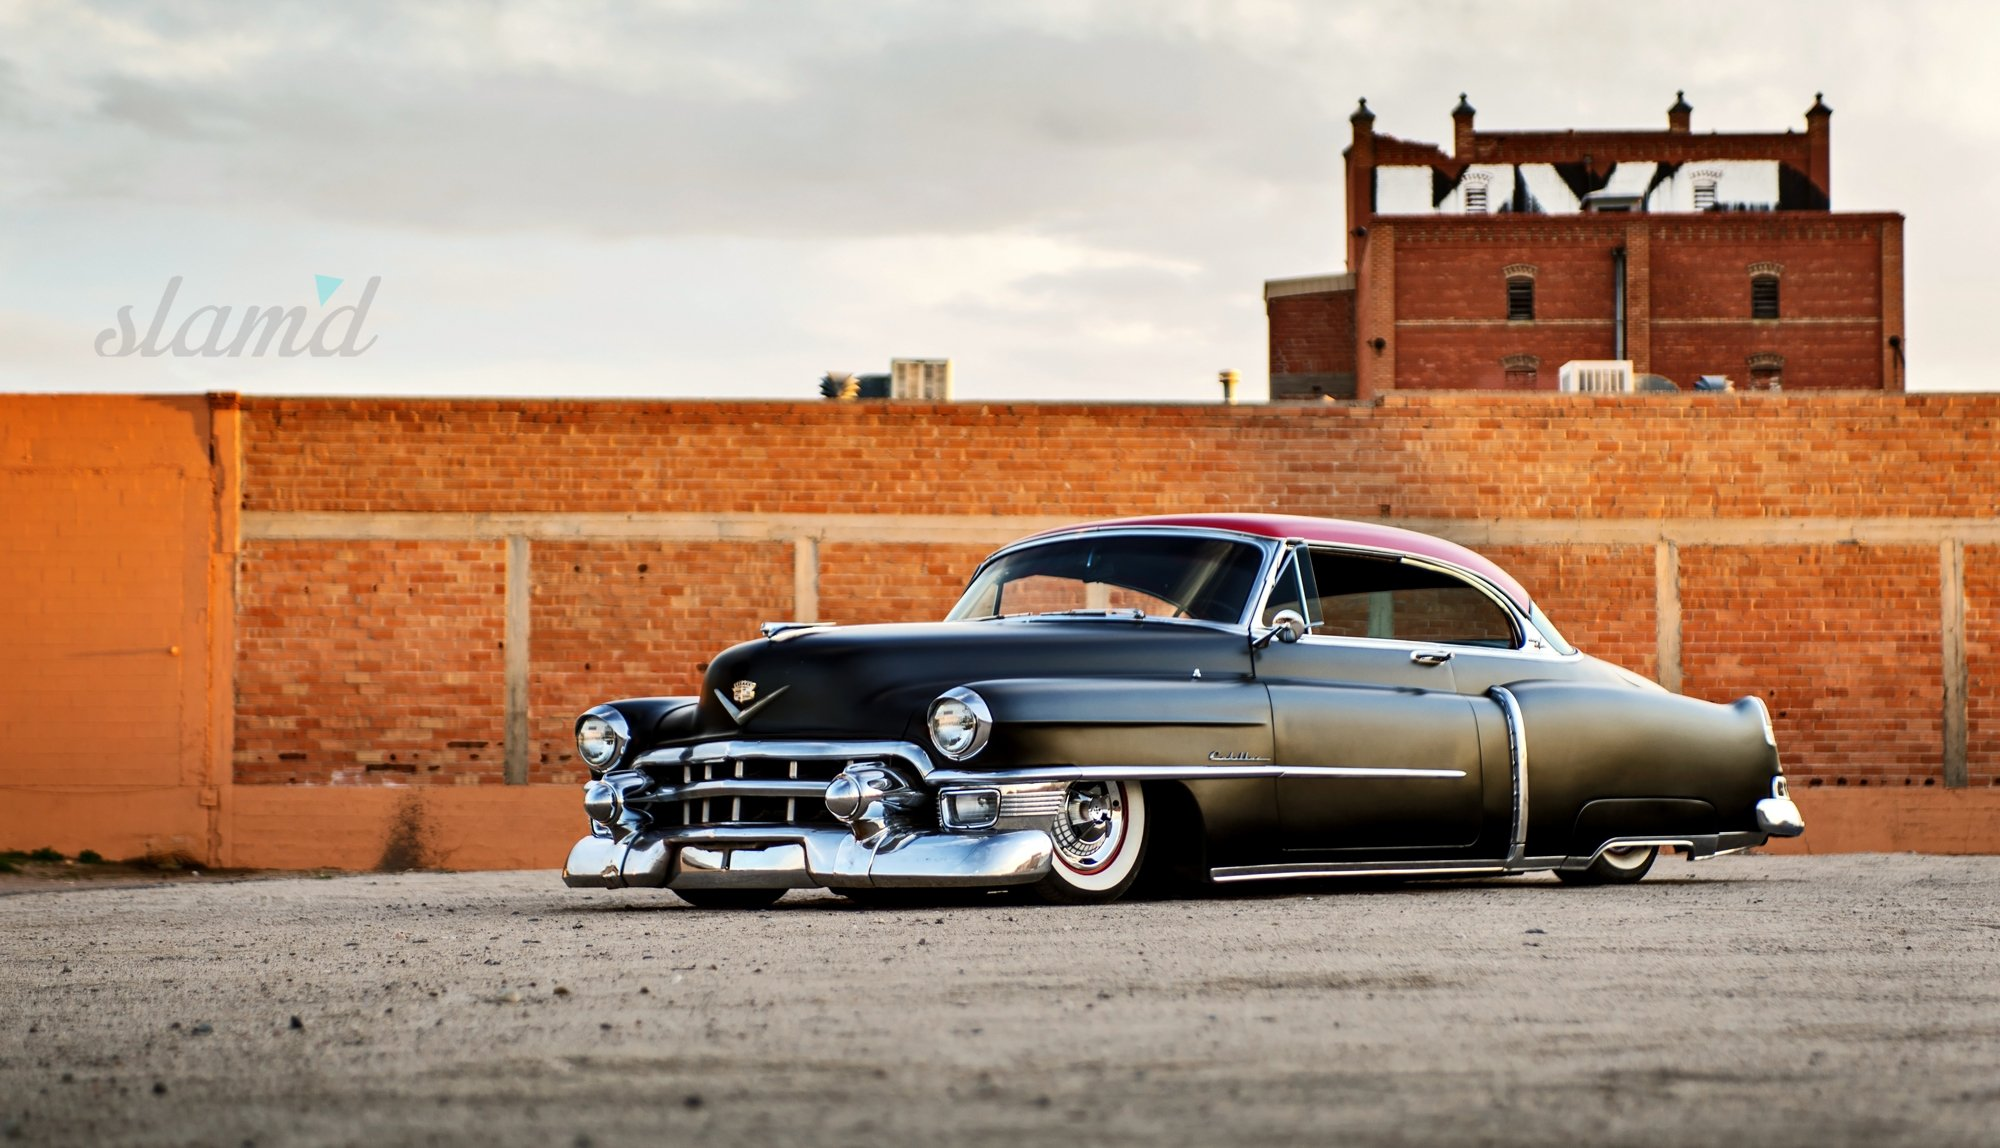 1953 Cadillac Coupe Deville Tuning Custom Hot Rod Rods